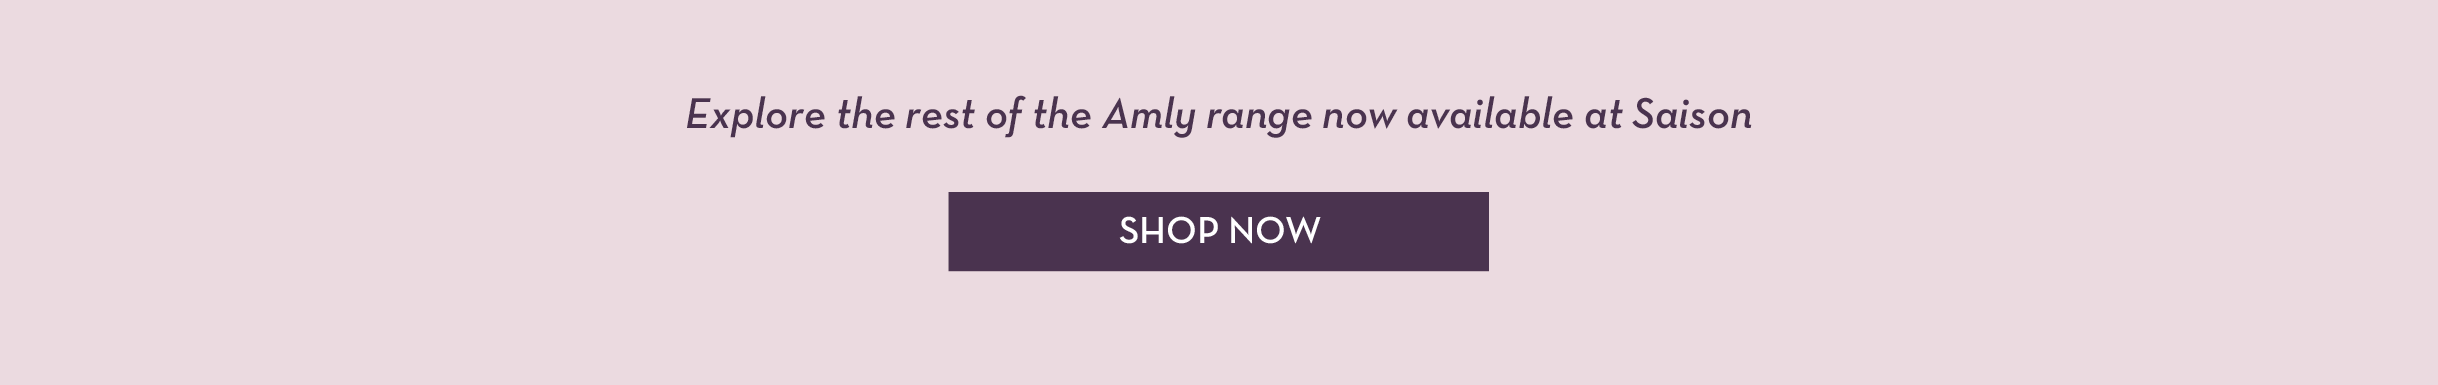 Explore the rest of the Amly range now available at Saison